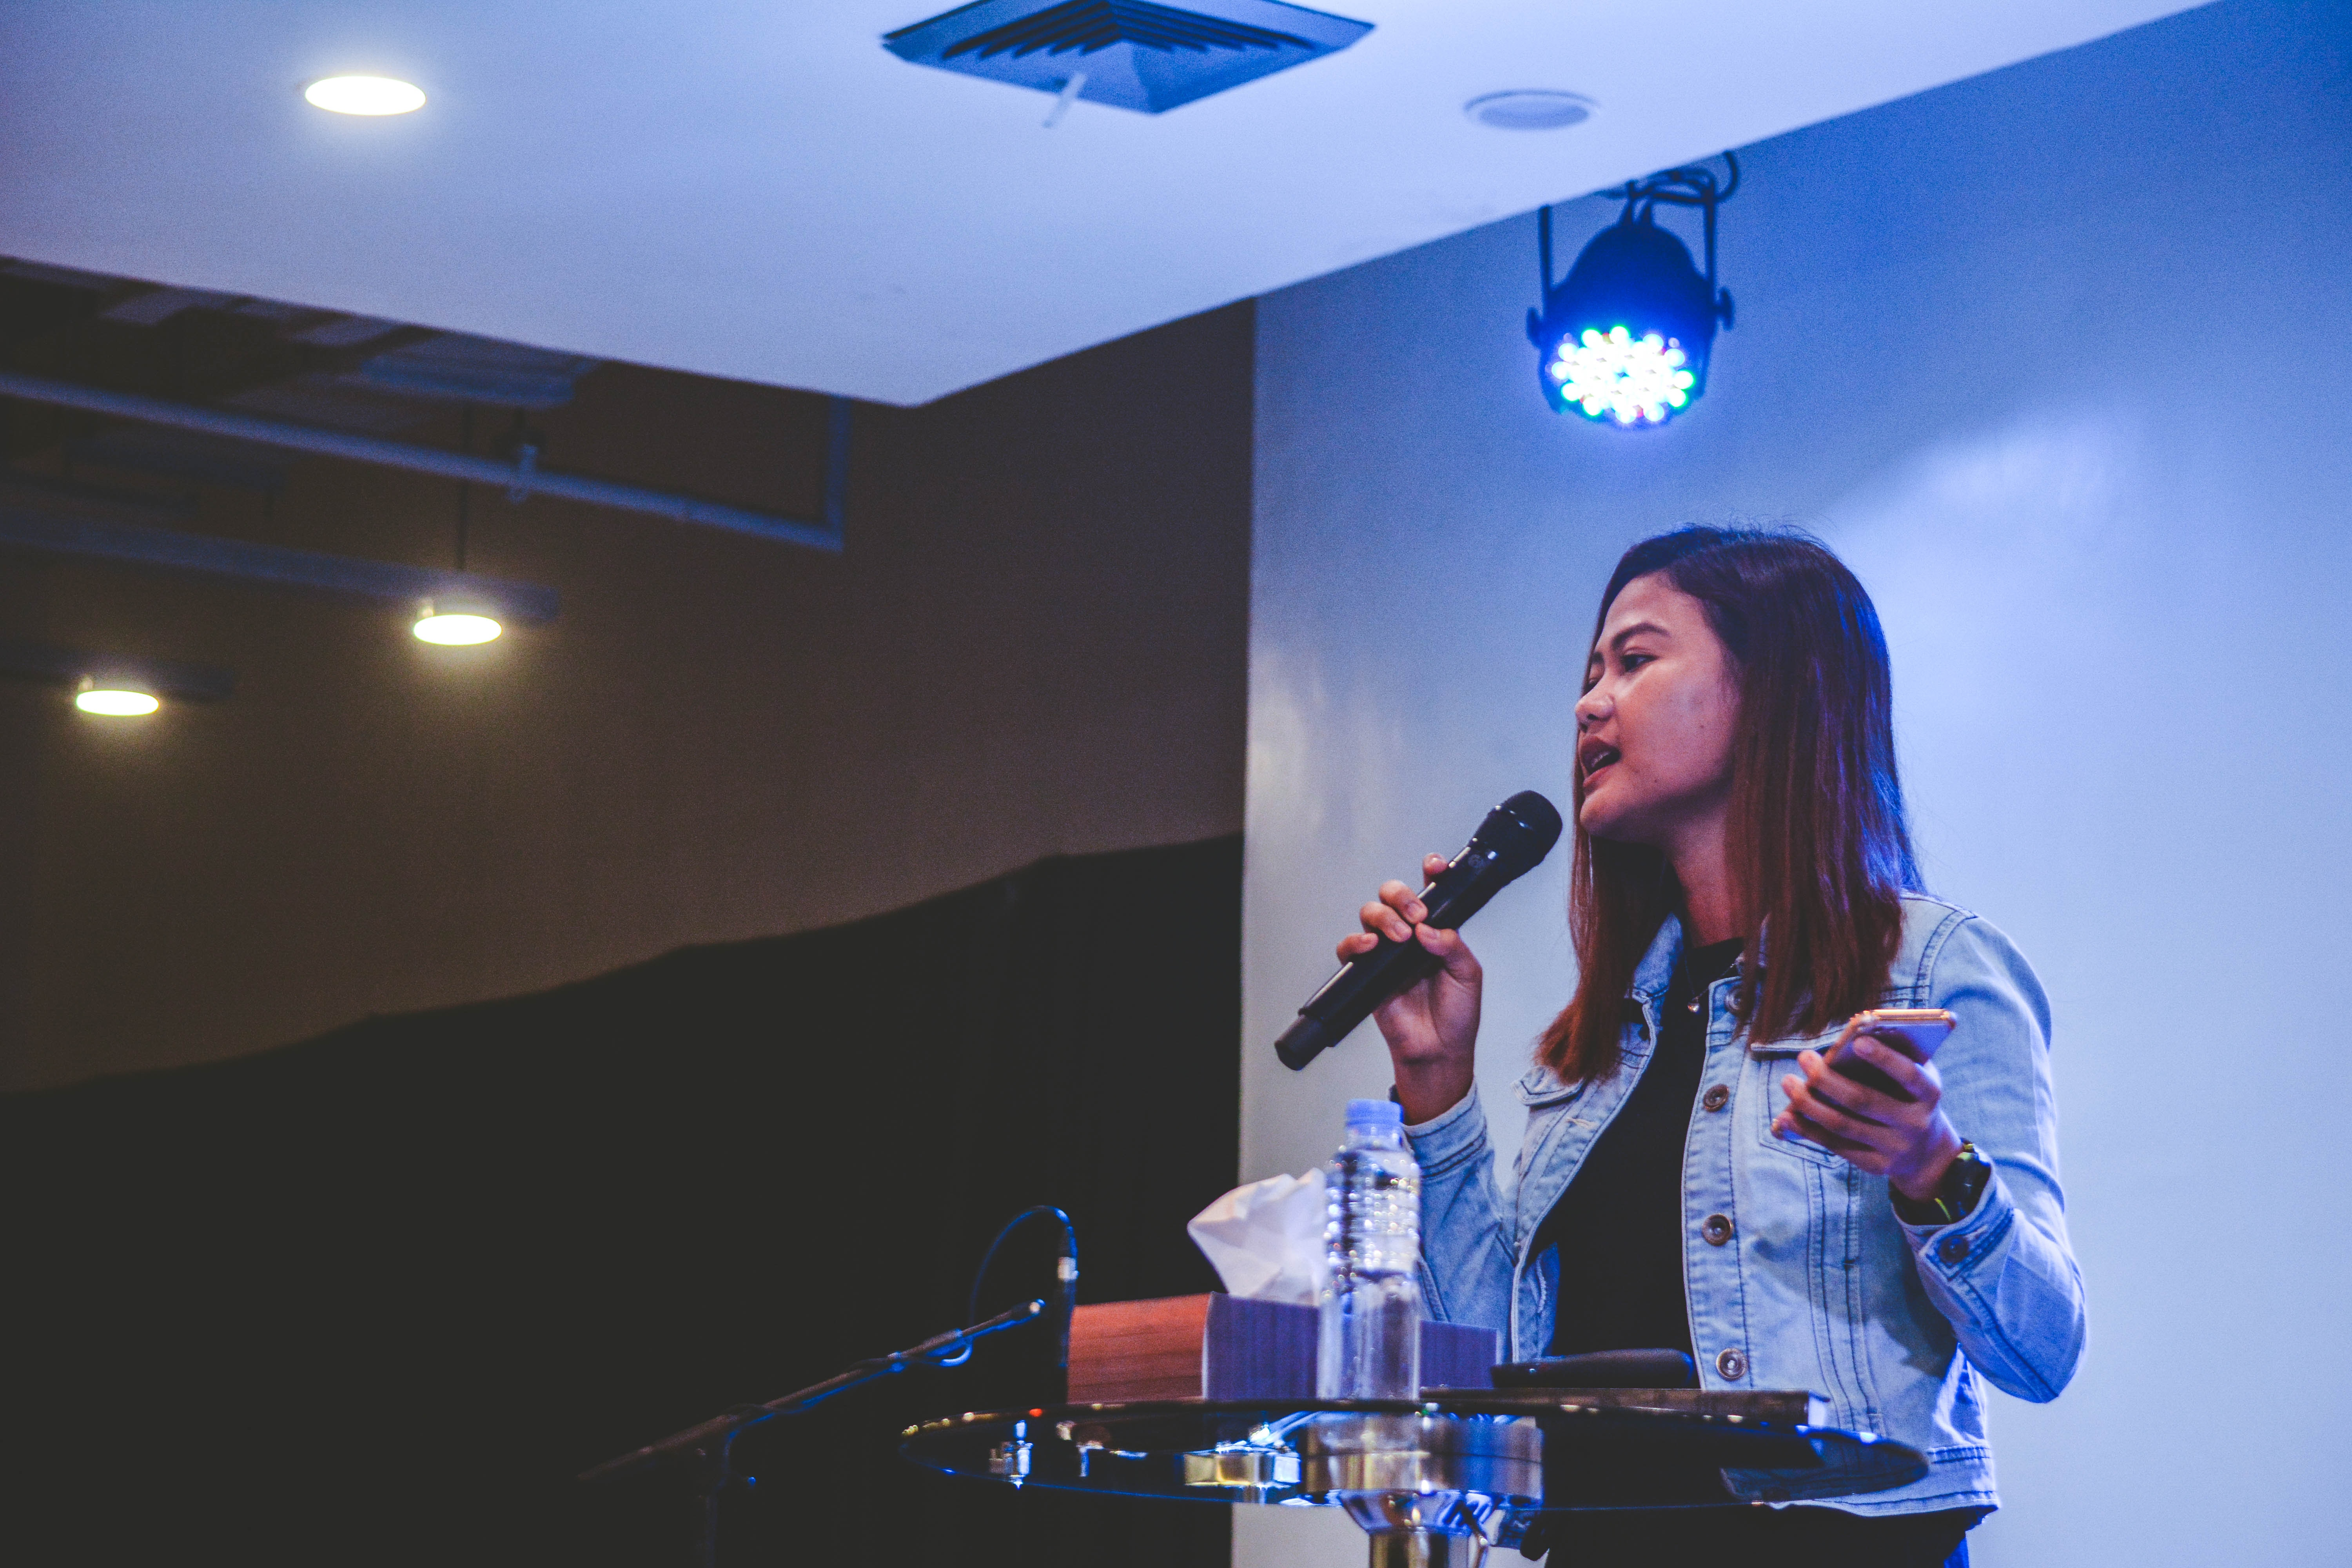 Singing karaoke is one of the things to do in Tokyo at night in Japan